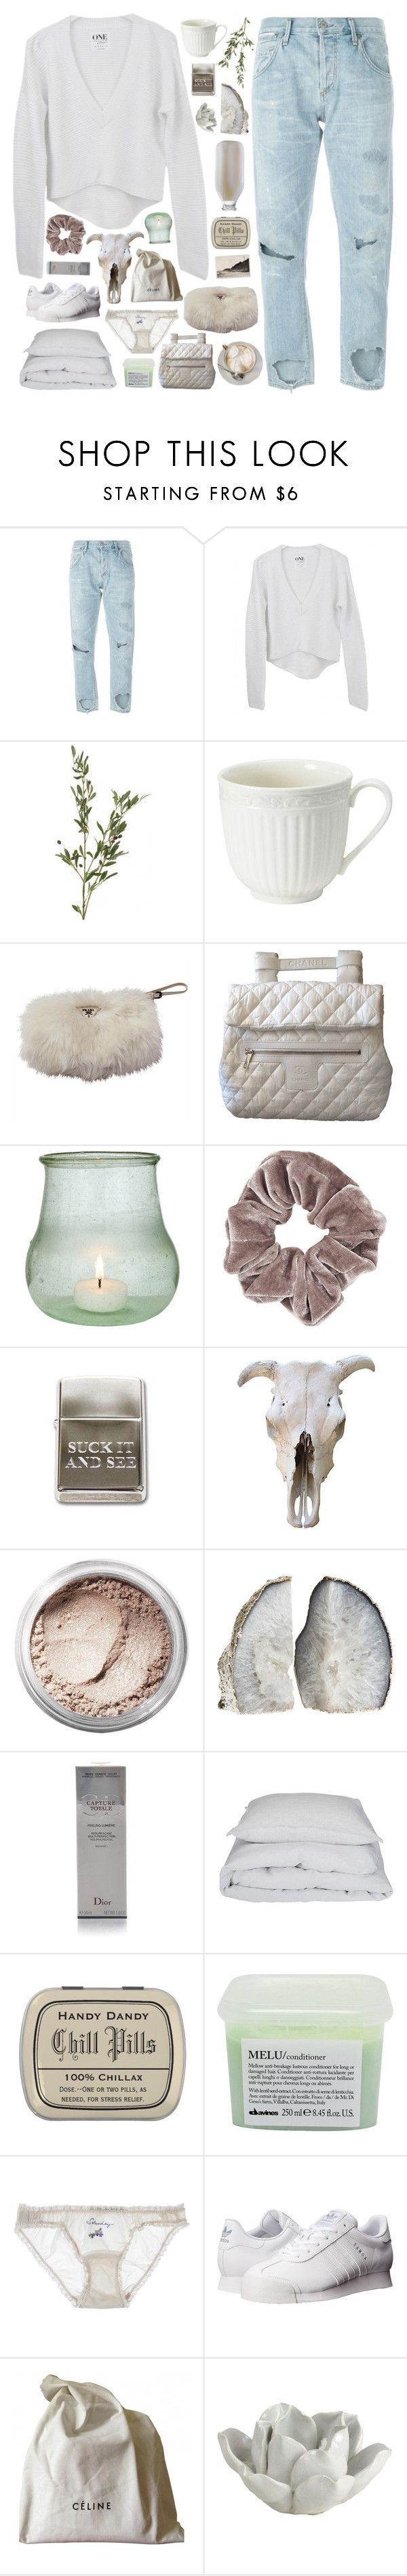 """""""her face prettier than those on the screen."""" by dance-the-pain-away ❤ liked on Polyvore featuring Citizens of Humanity, Prada, Chanel, Cultural Intrigue, Topshop, Bare Escentuals, Christian Dior, By Nord, Davines and STELLA McCARTNEY"""